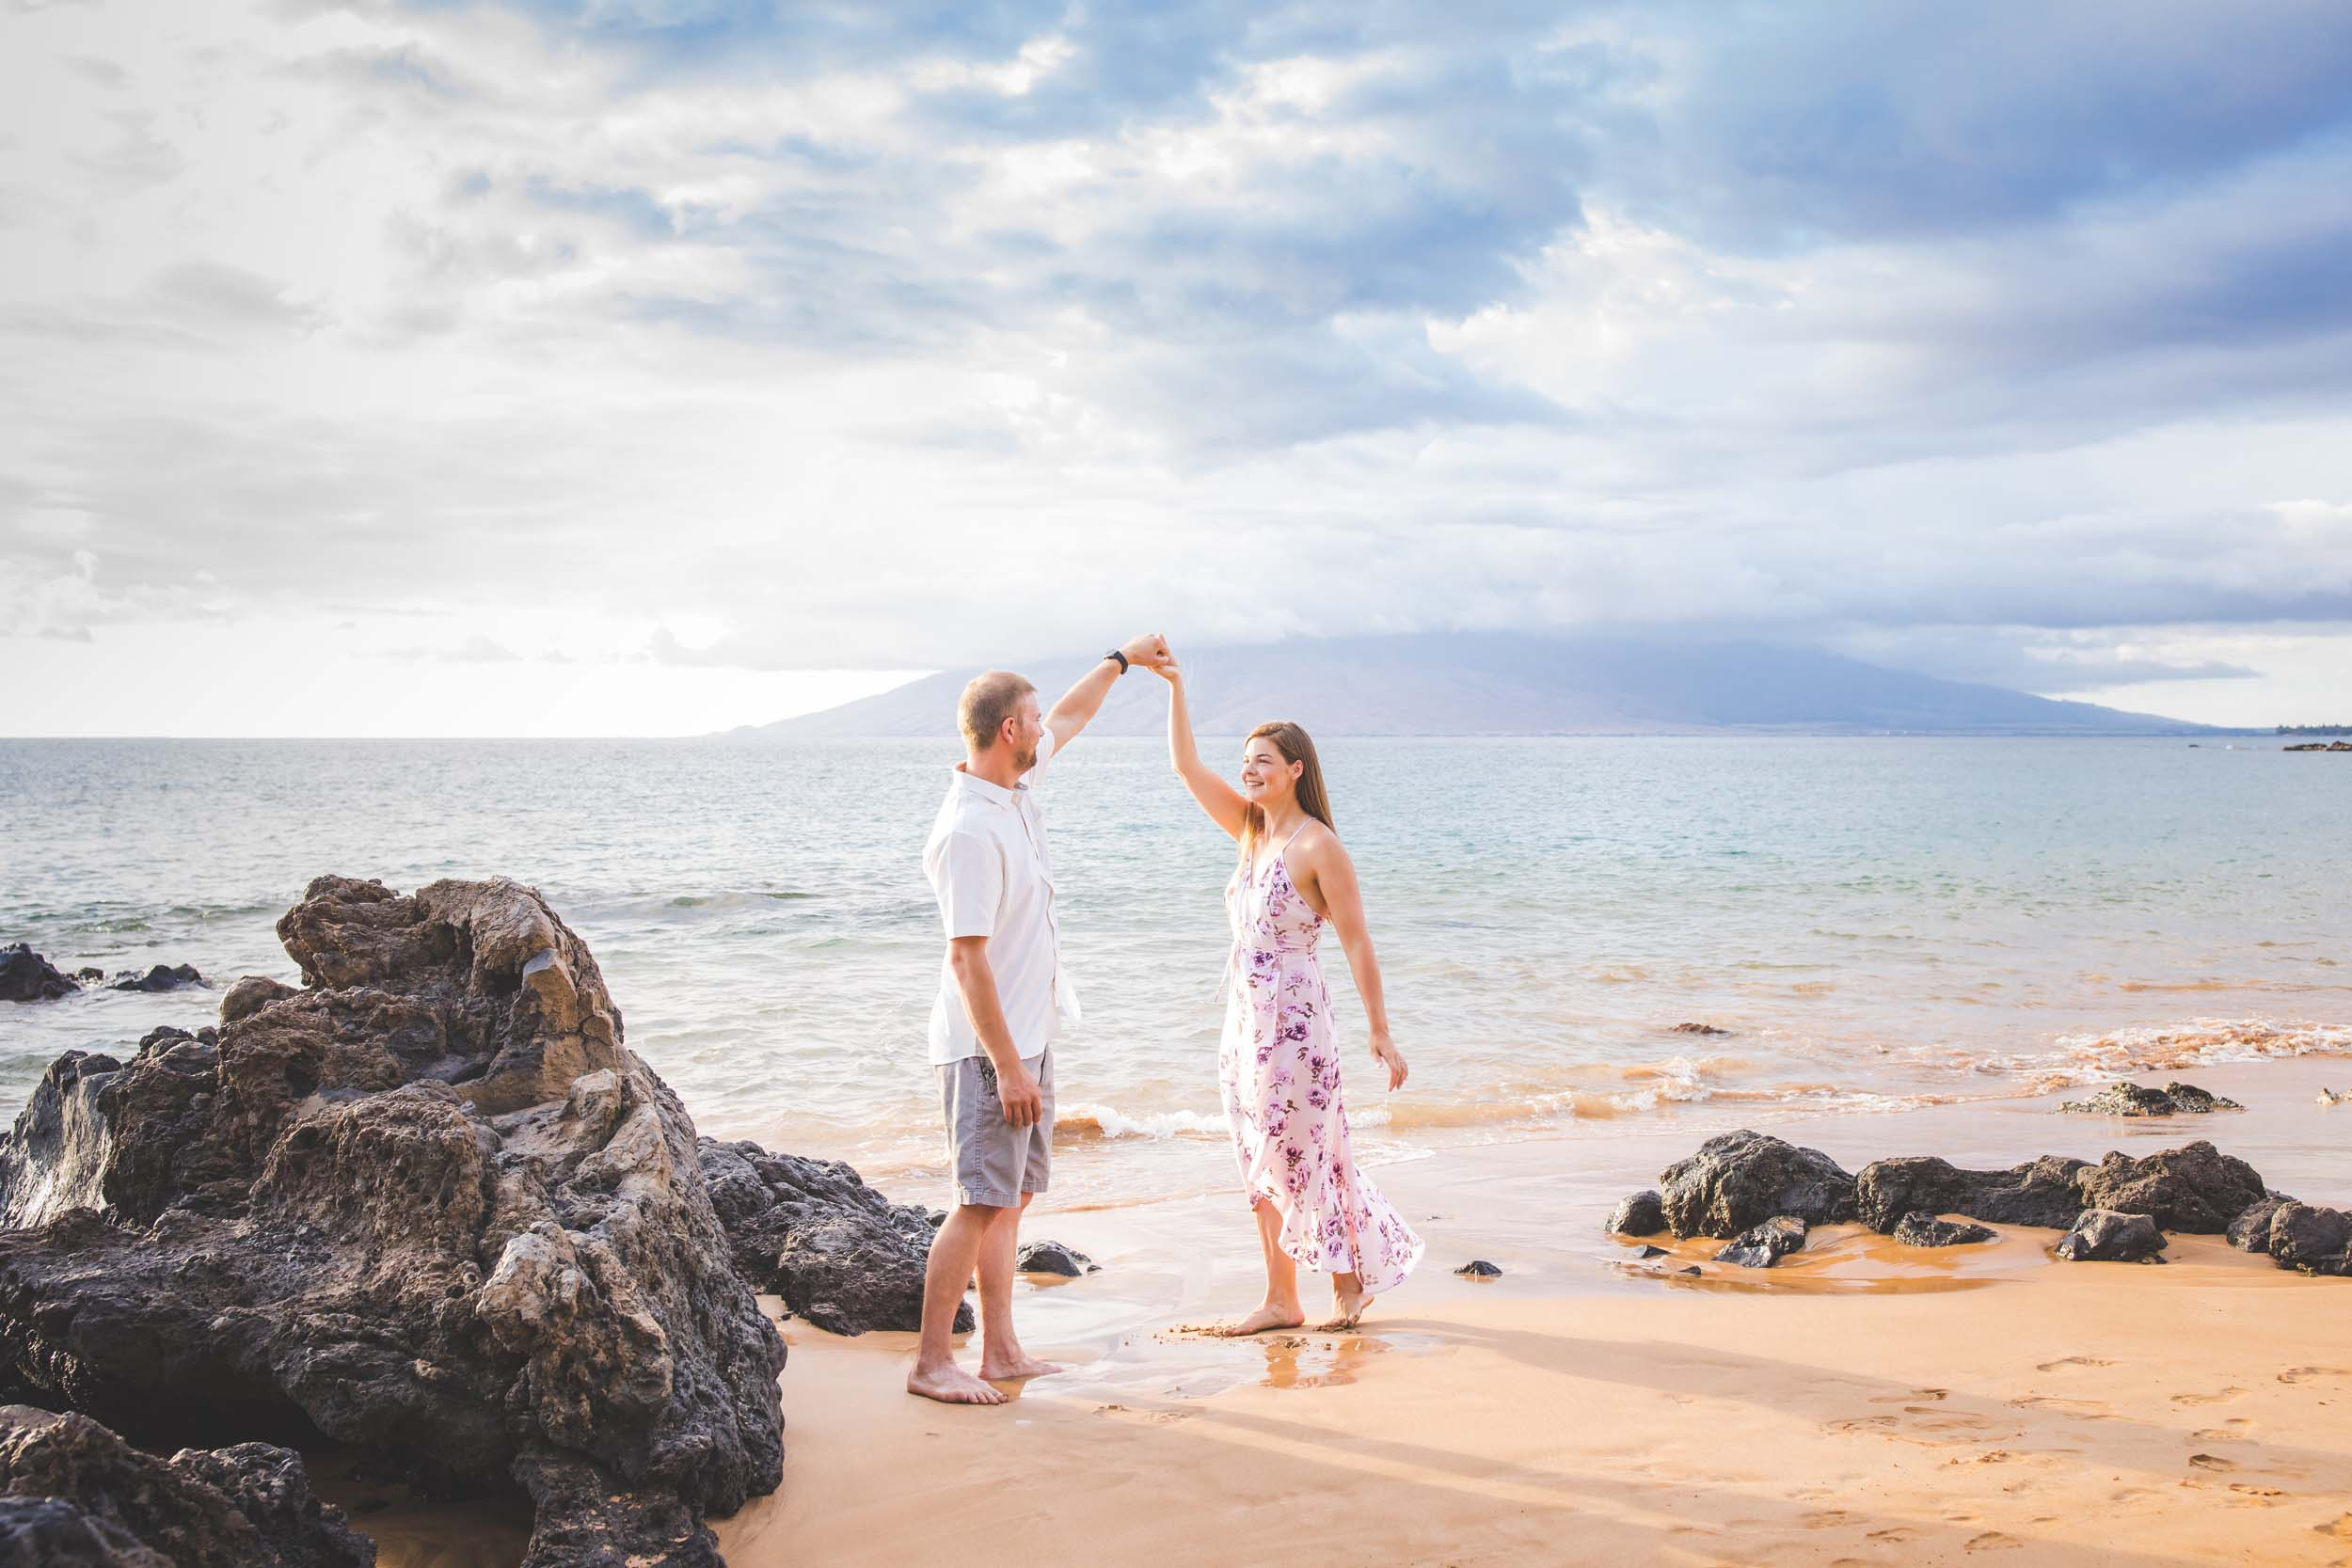 Couple dancing on the beach together in Maui, USA